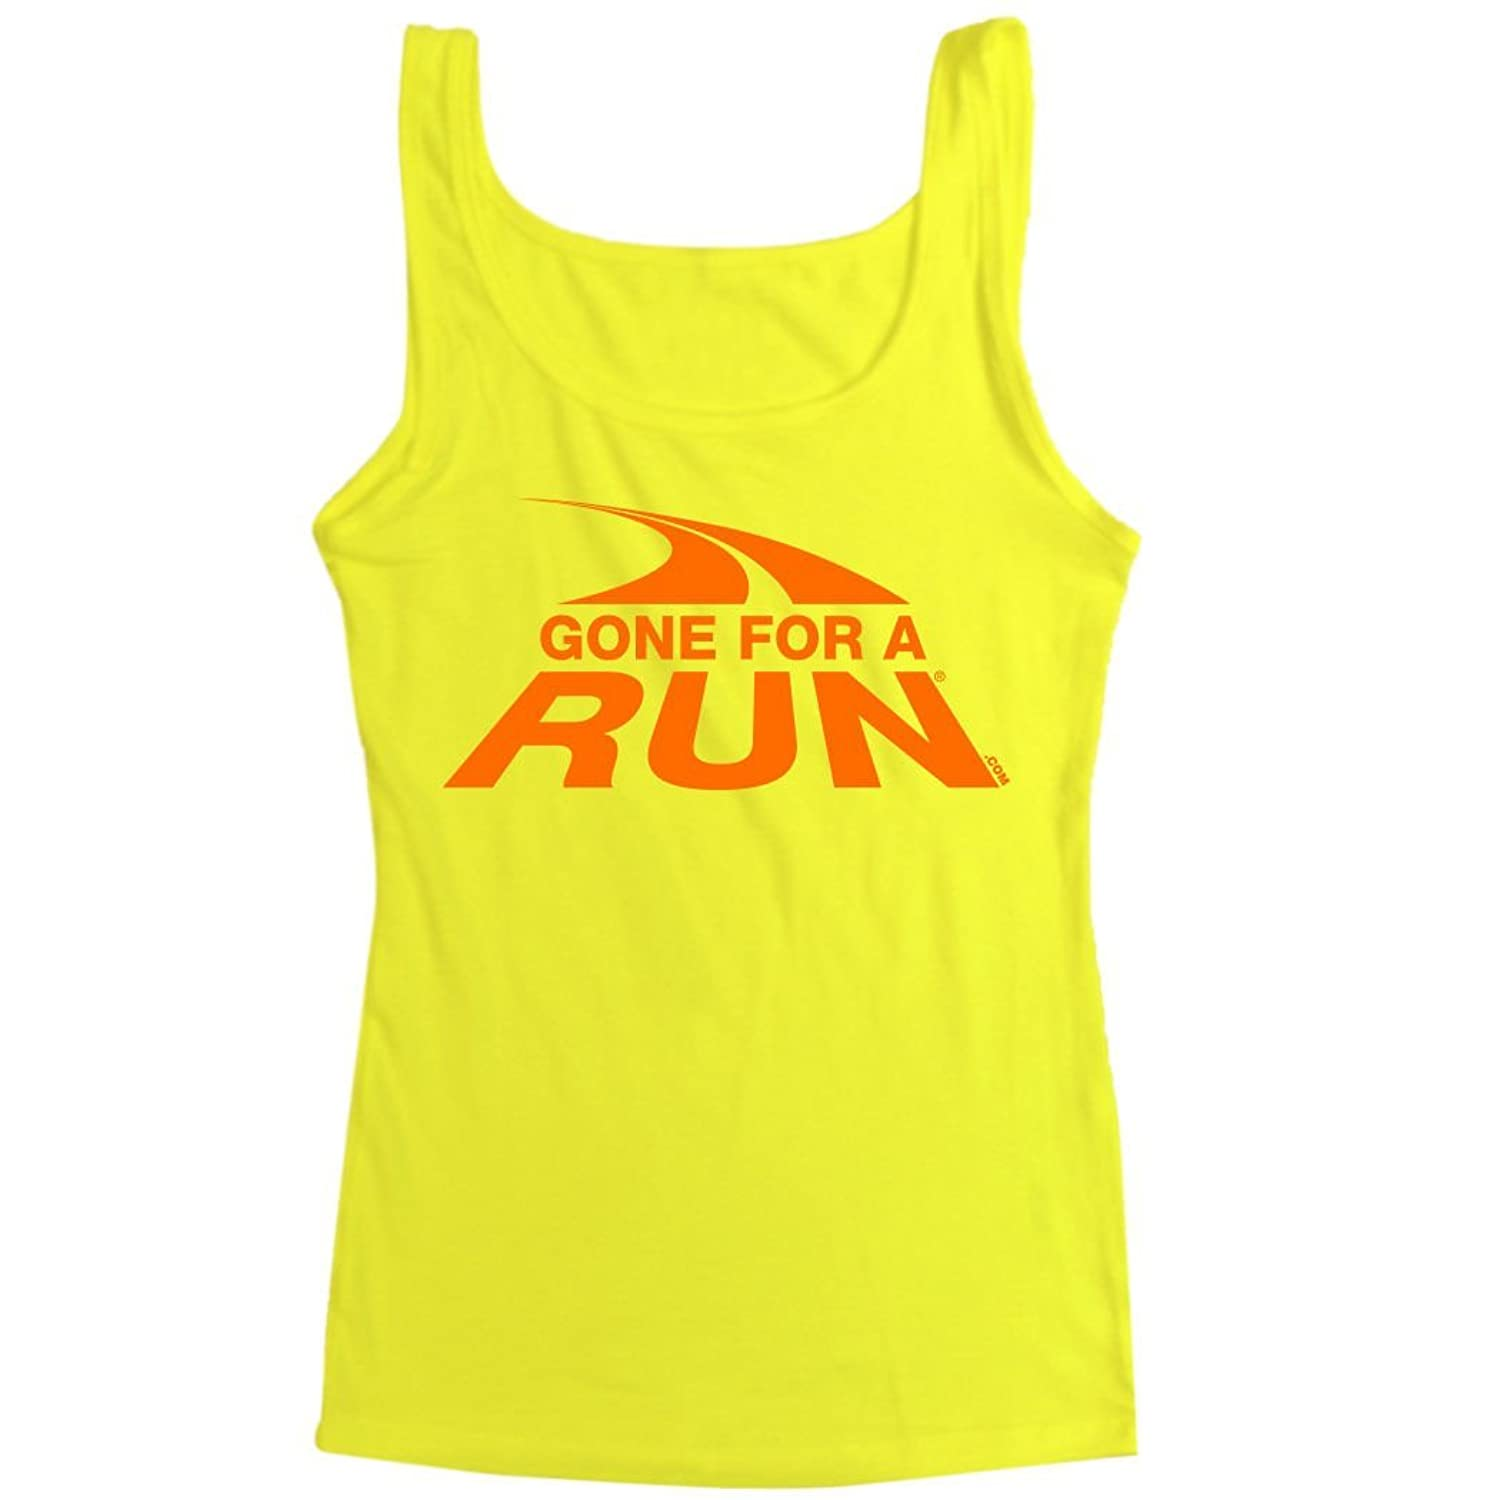 Women's Athletic Tank Top Gone For a Run Logo (Orange)